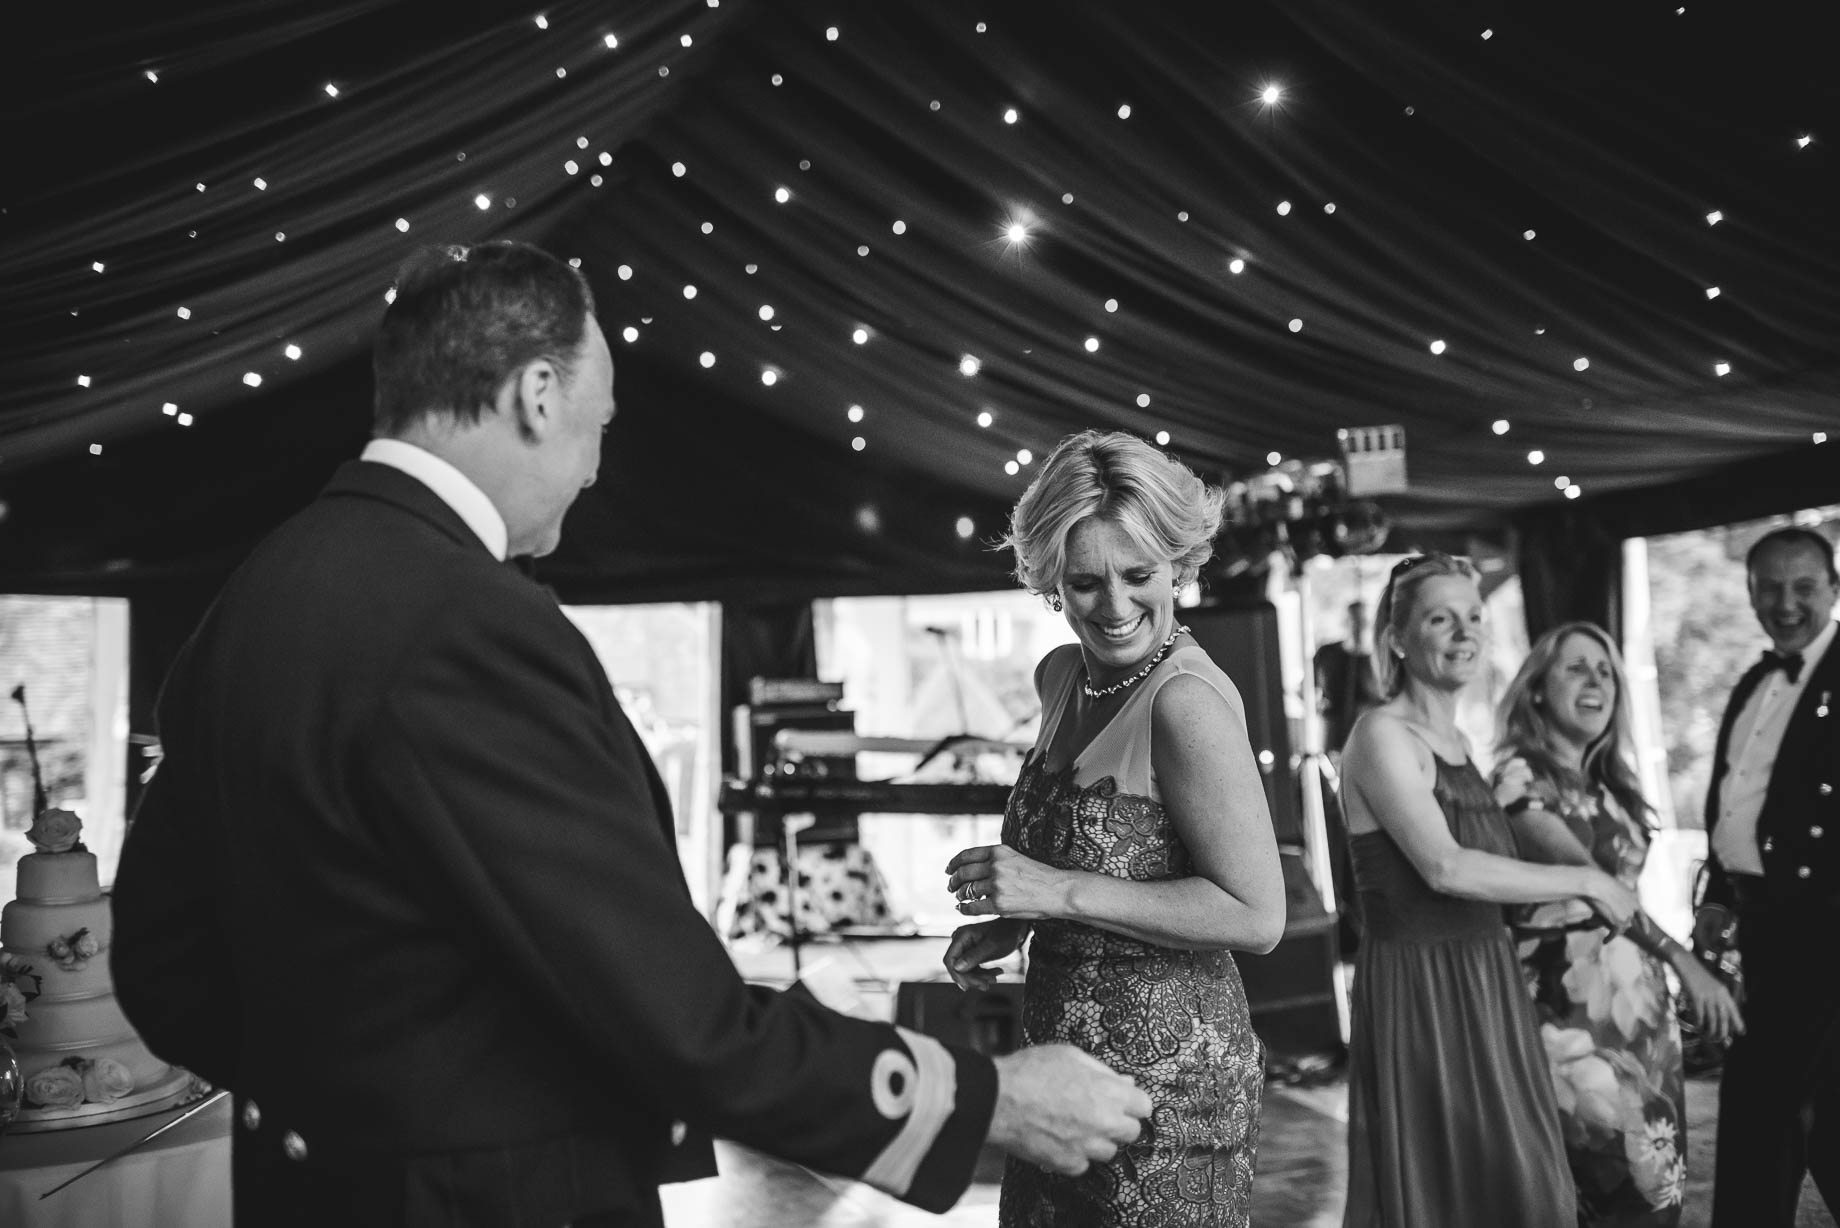 Hampshire wedding photography - Emily and Rob - Guy Collier Photography (178 of 192)